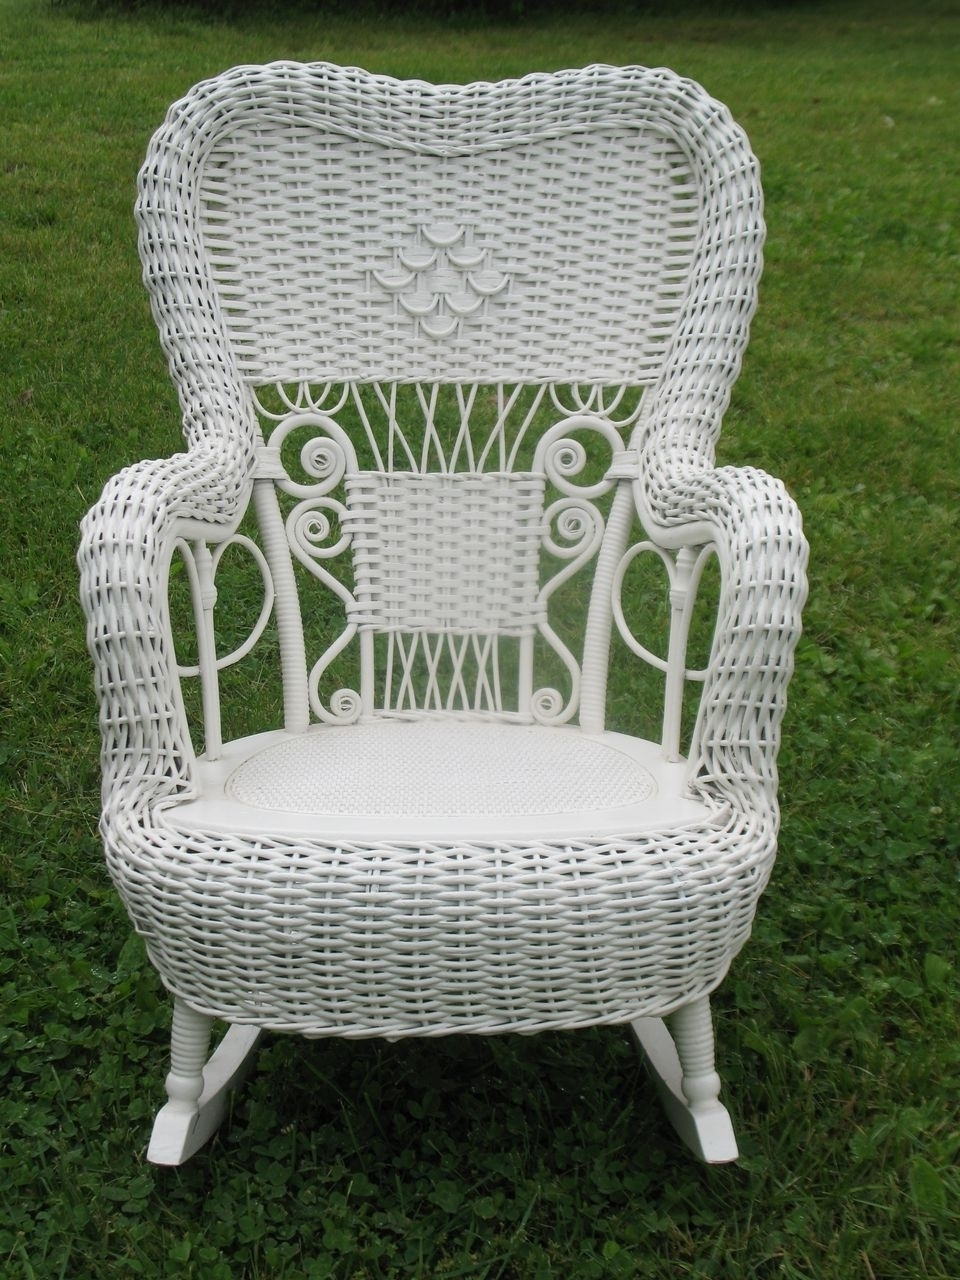 Vintage Wicker Rocking Chair | Modern Chair Decoration In Vintage Wicker Rocking Chairs (#13 of 15)